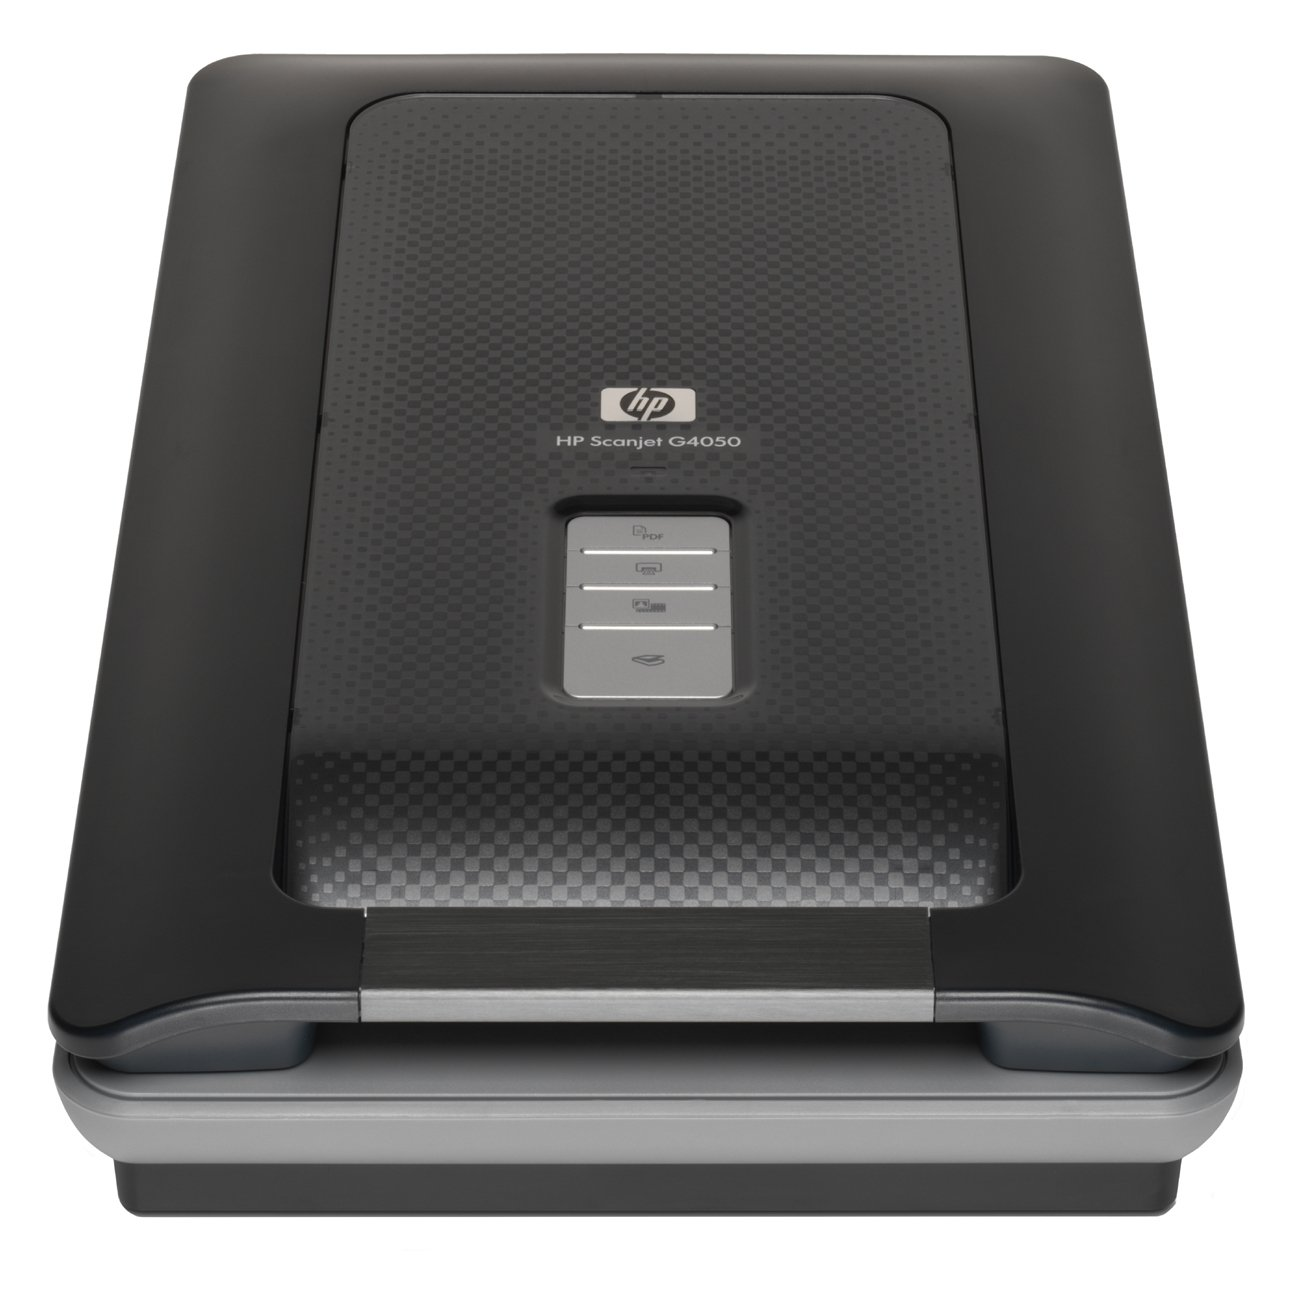 HP® Scanjet G4050 High-Speed USB Photo Scanner, 4800 x 9600dpi by HP